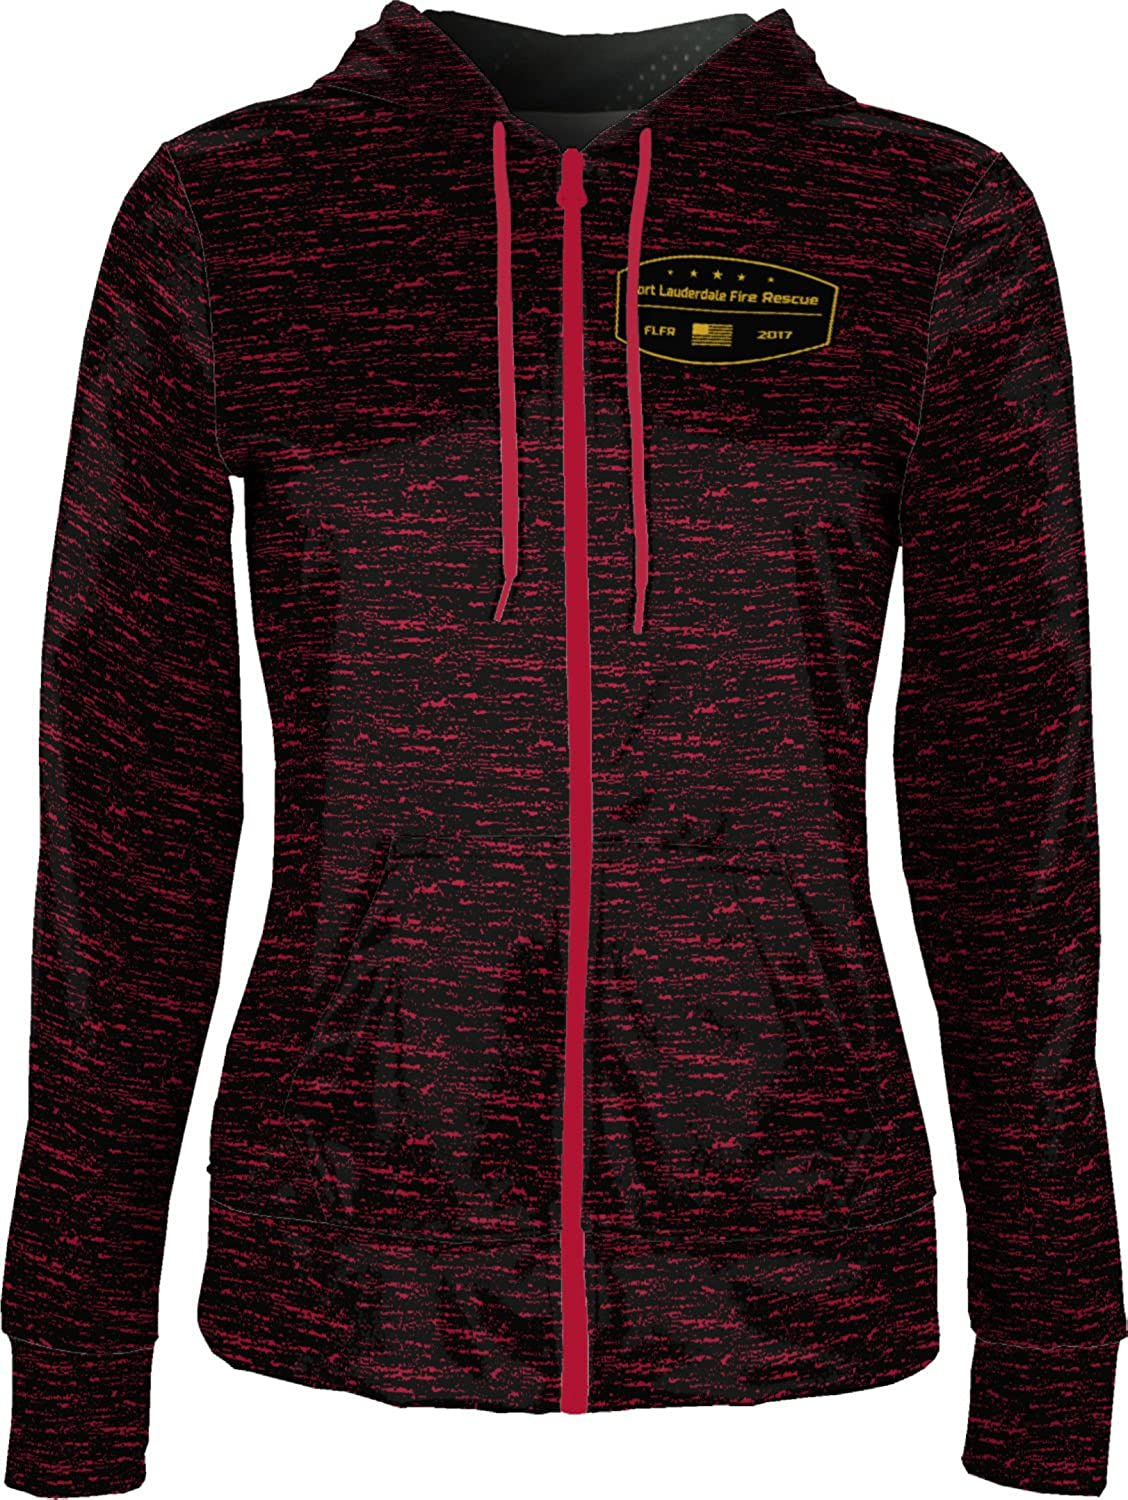 Women's Fort Lauderdale Fire Rescue Fire Department Brushed Fullzip Hoodie